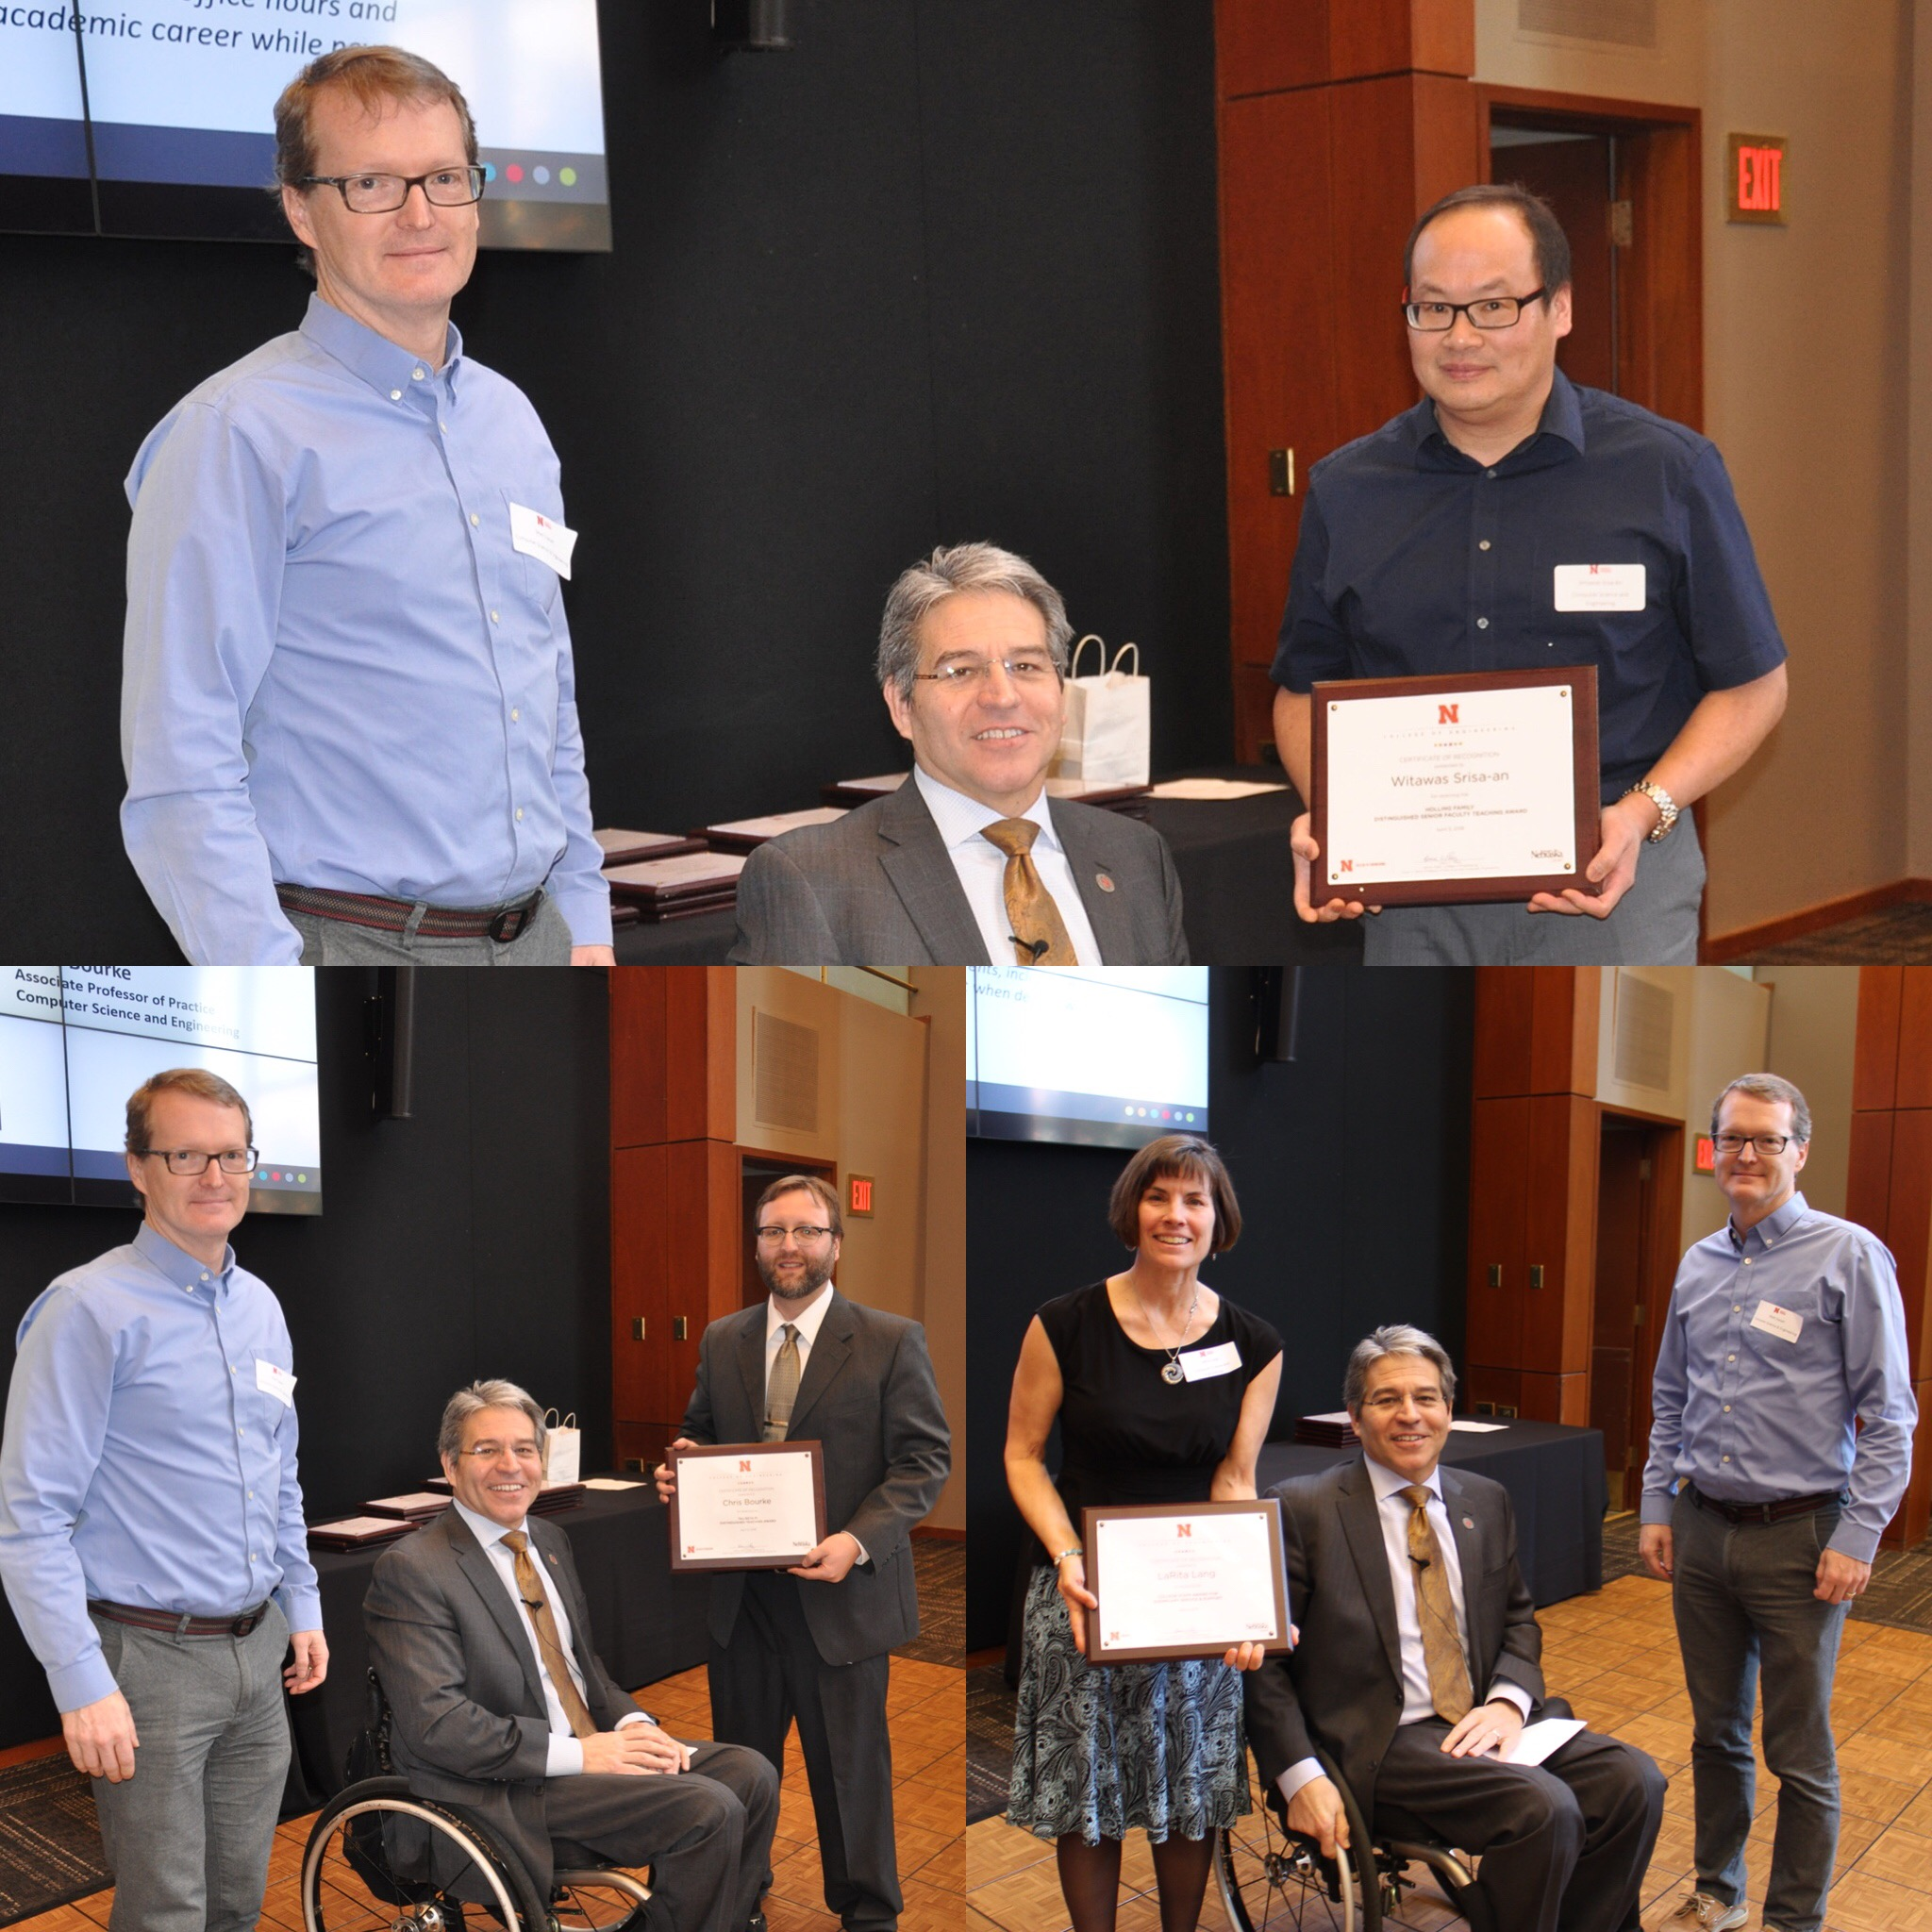 Award winners Witawas Srisa-An, Chris Bourke, and LaRita Lang pose with department chair Matthew Dwyer and interim dean Lance Perez at the College of Engineering Employee Luncheon and Awards Recognition Ceremony last week.